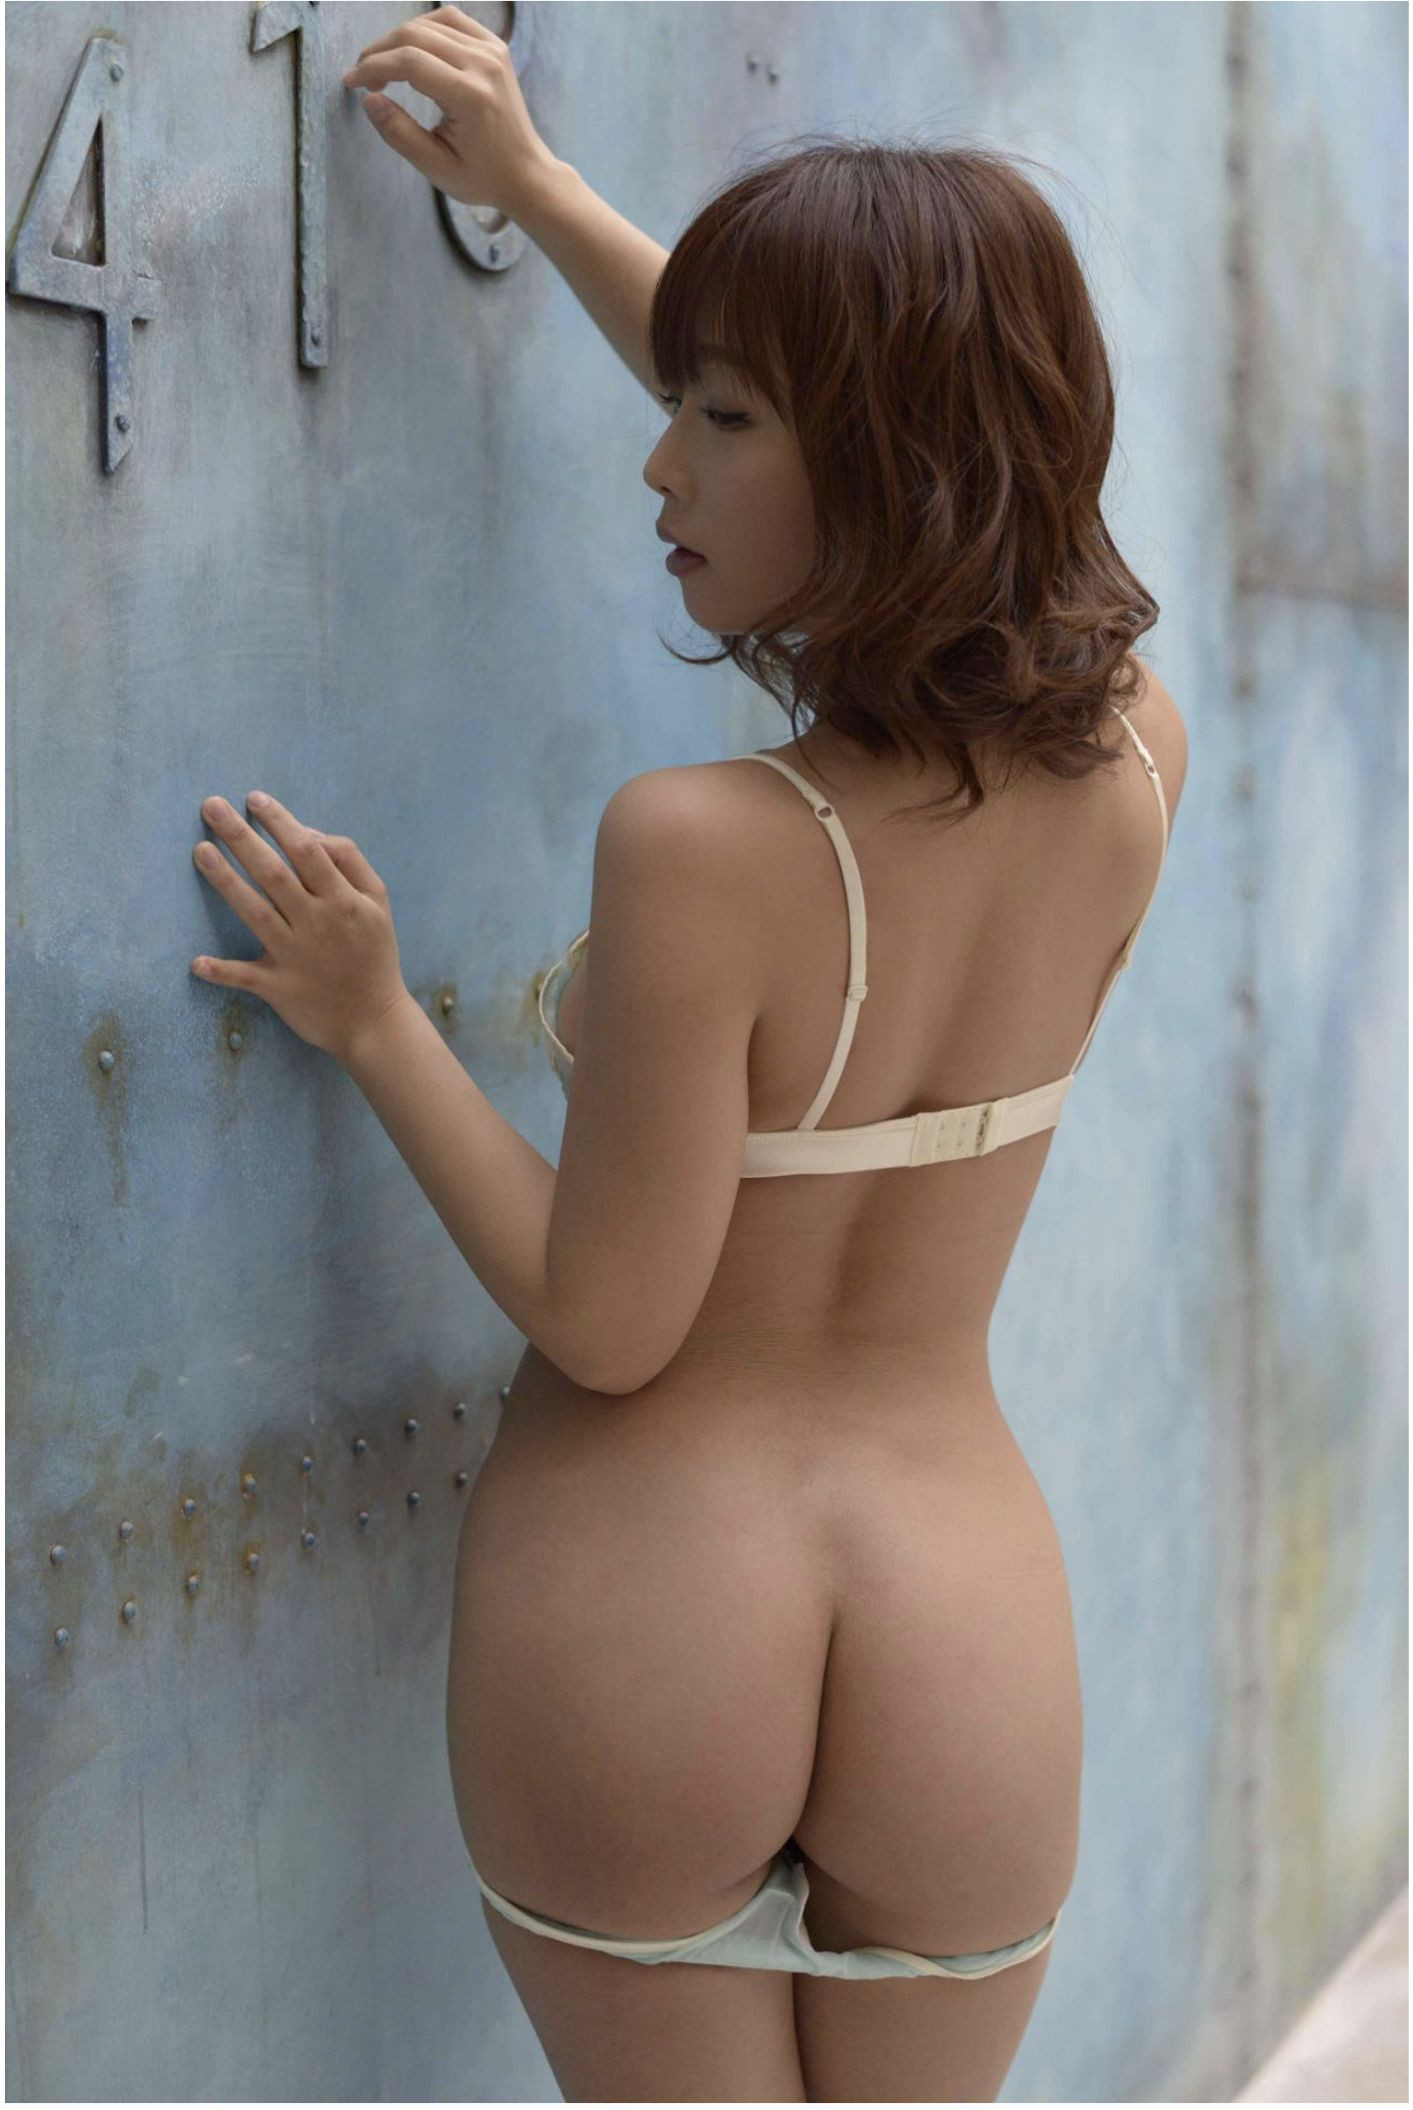 SOFT ON DEMAND GRAVURE COLLECTION 紗倉まな04 photo 088